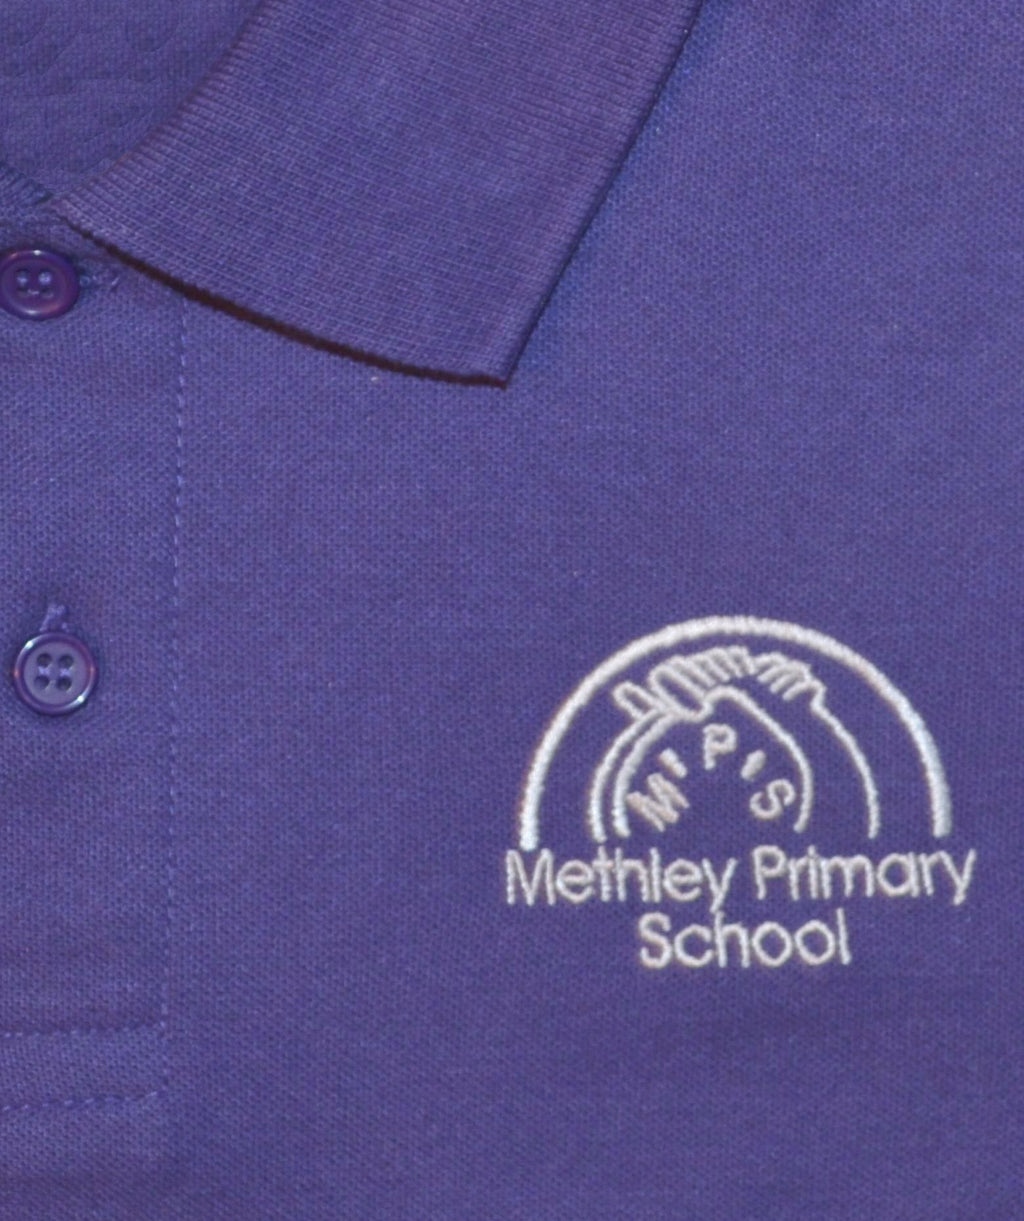 Methley Primary School Uniform Bundle 8